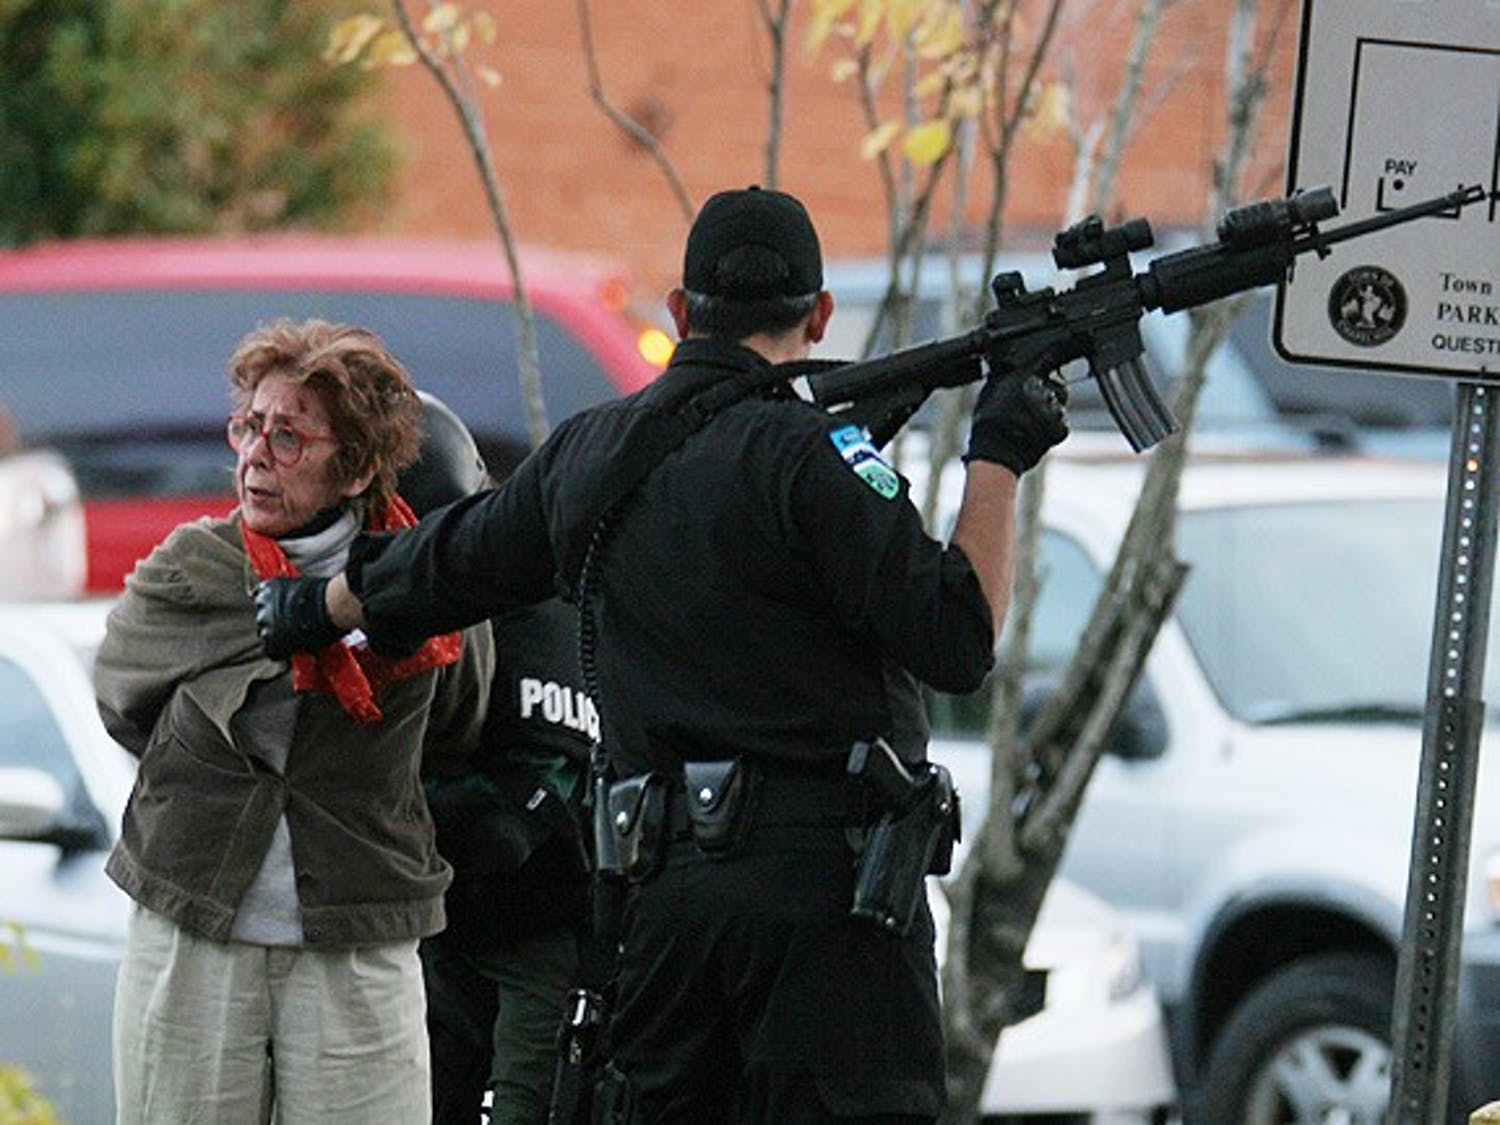 People involved with Occupy Chapel Hill were arrested and put on CHT buses.